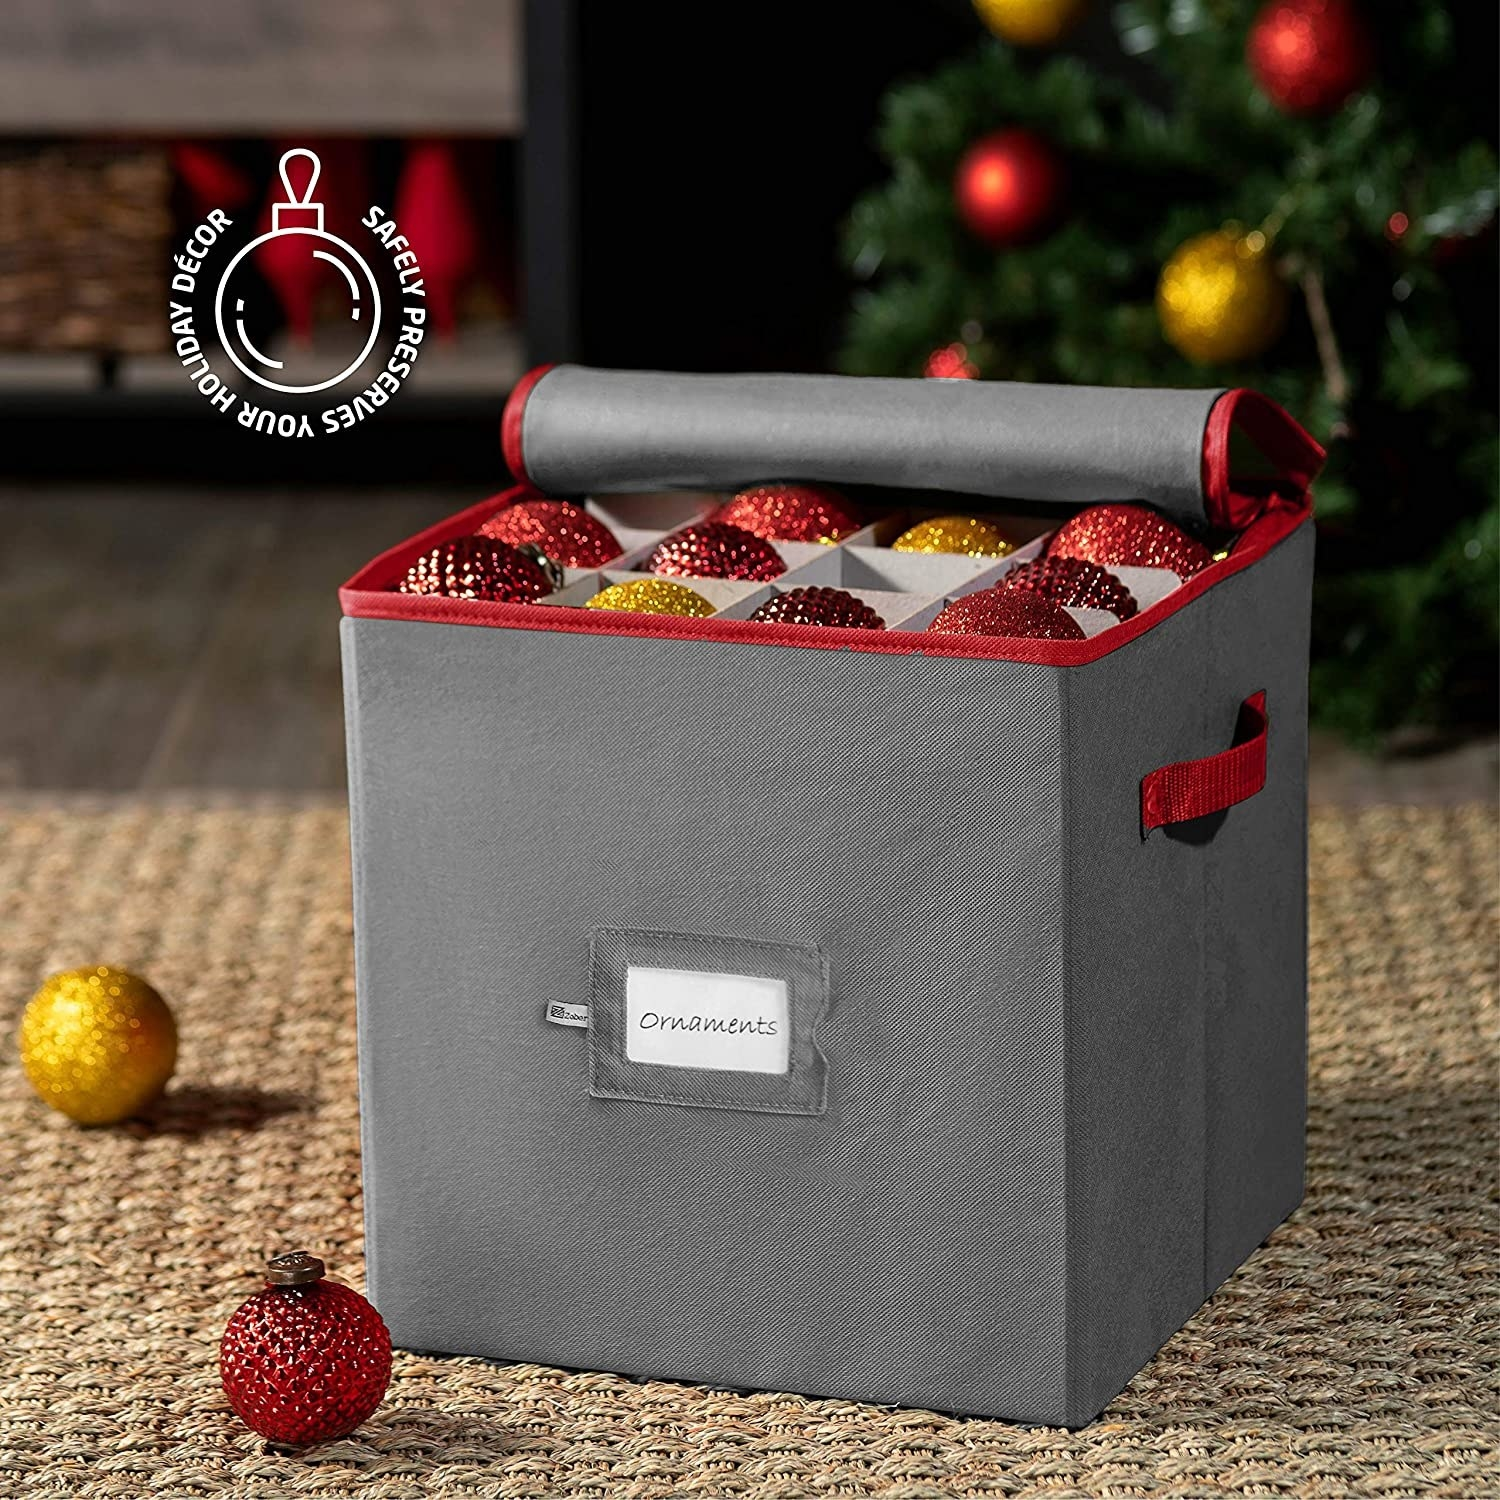 The ornament storage box in gray